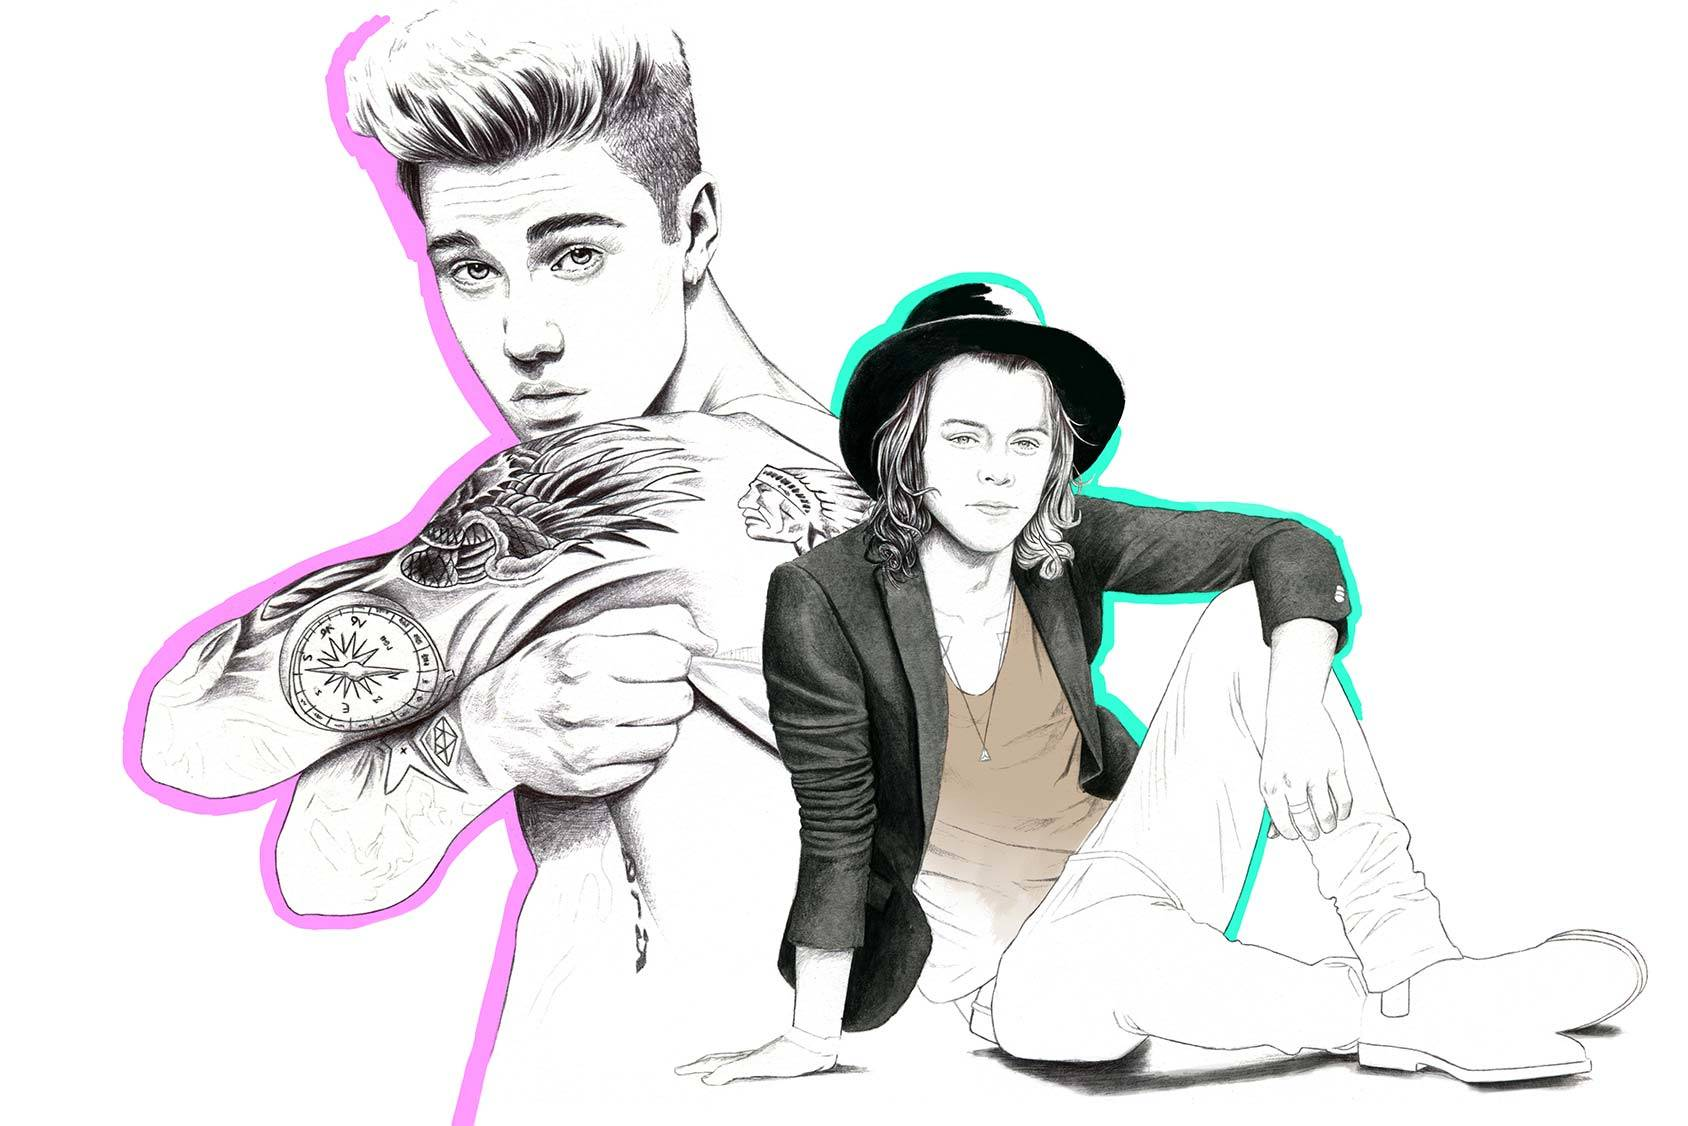 Justin Bieber, the new member of One Direction? By Florian Meacci.